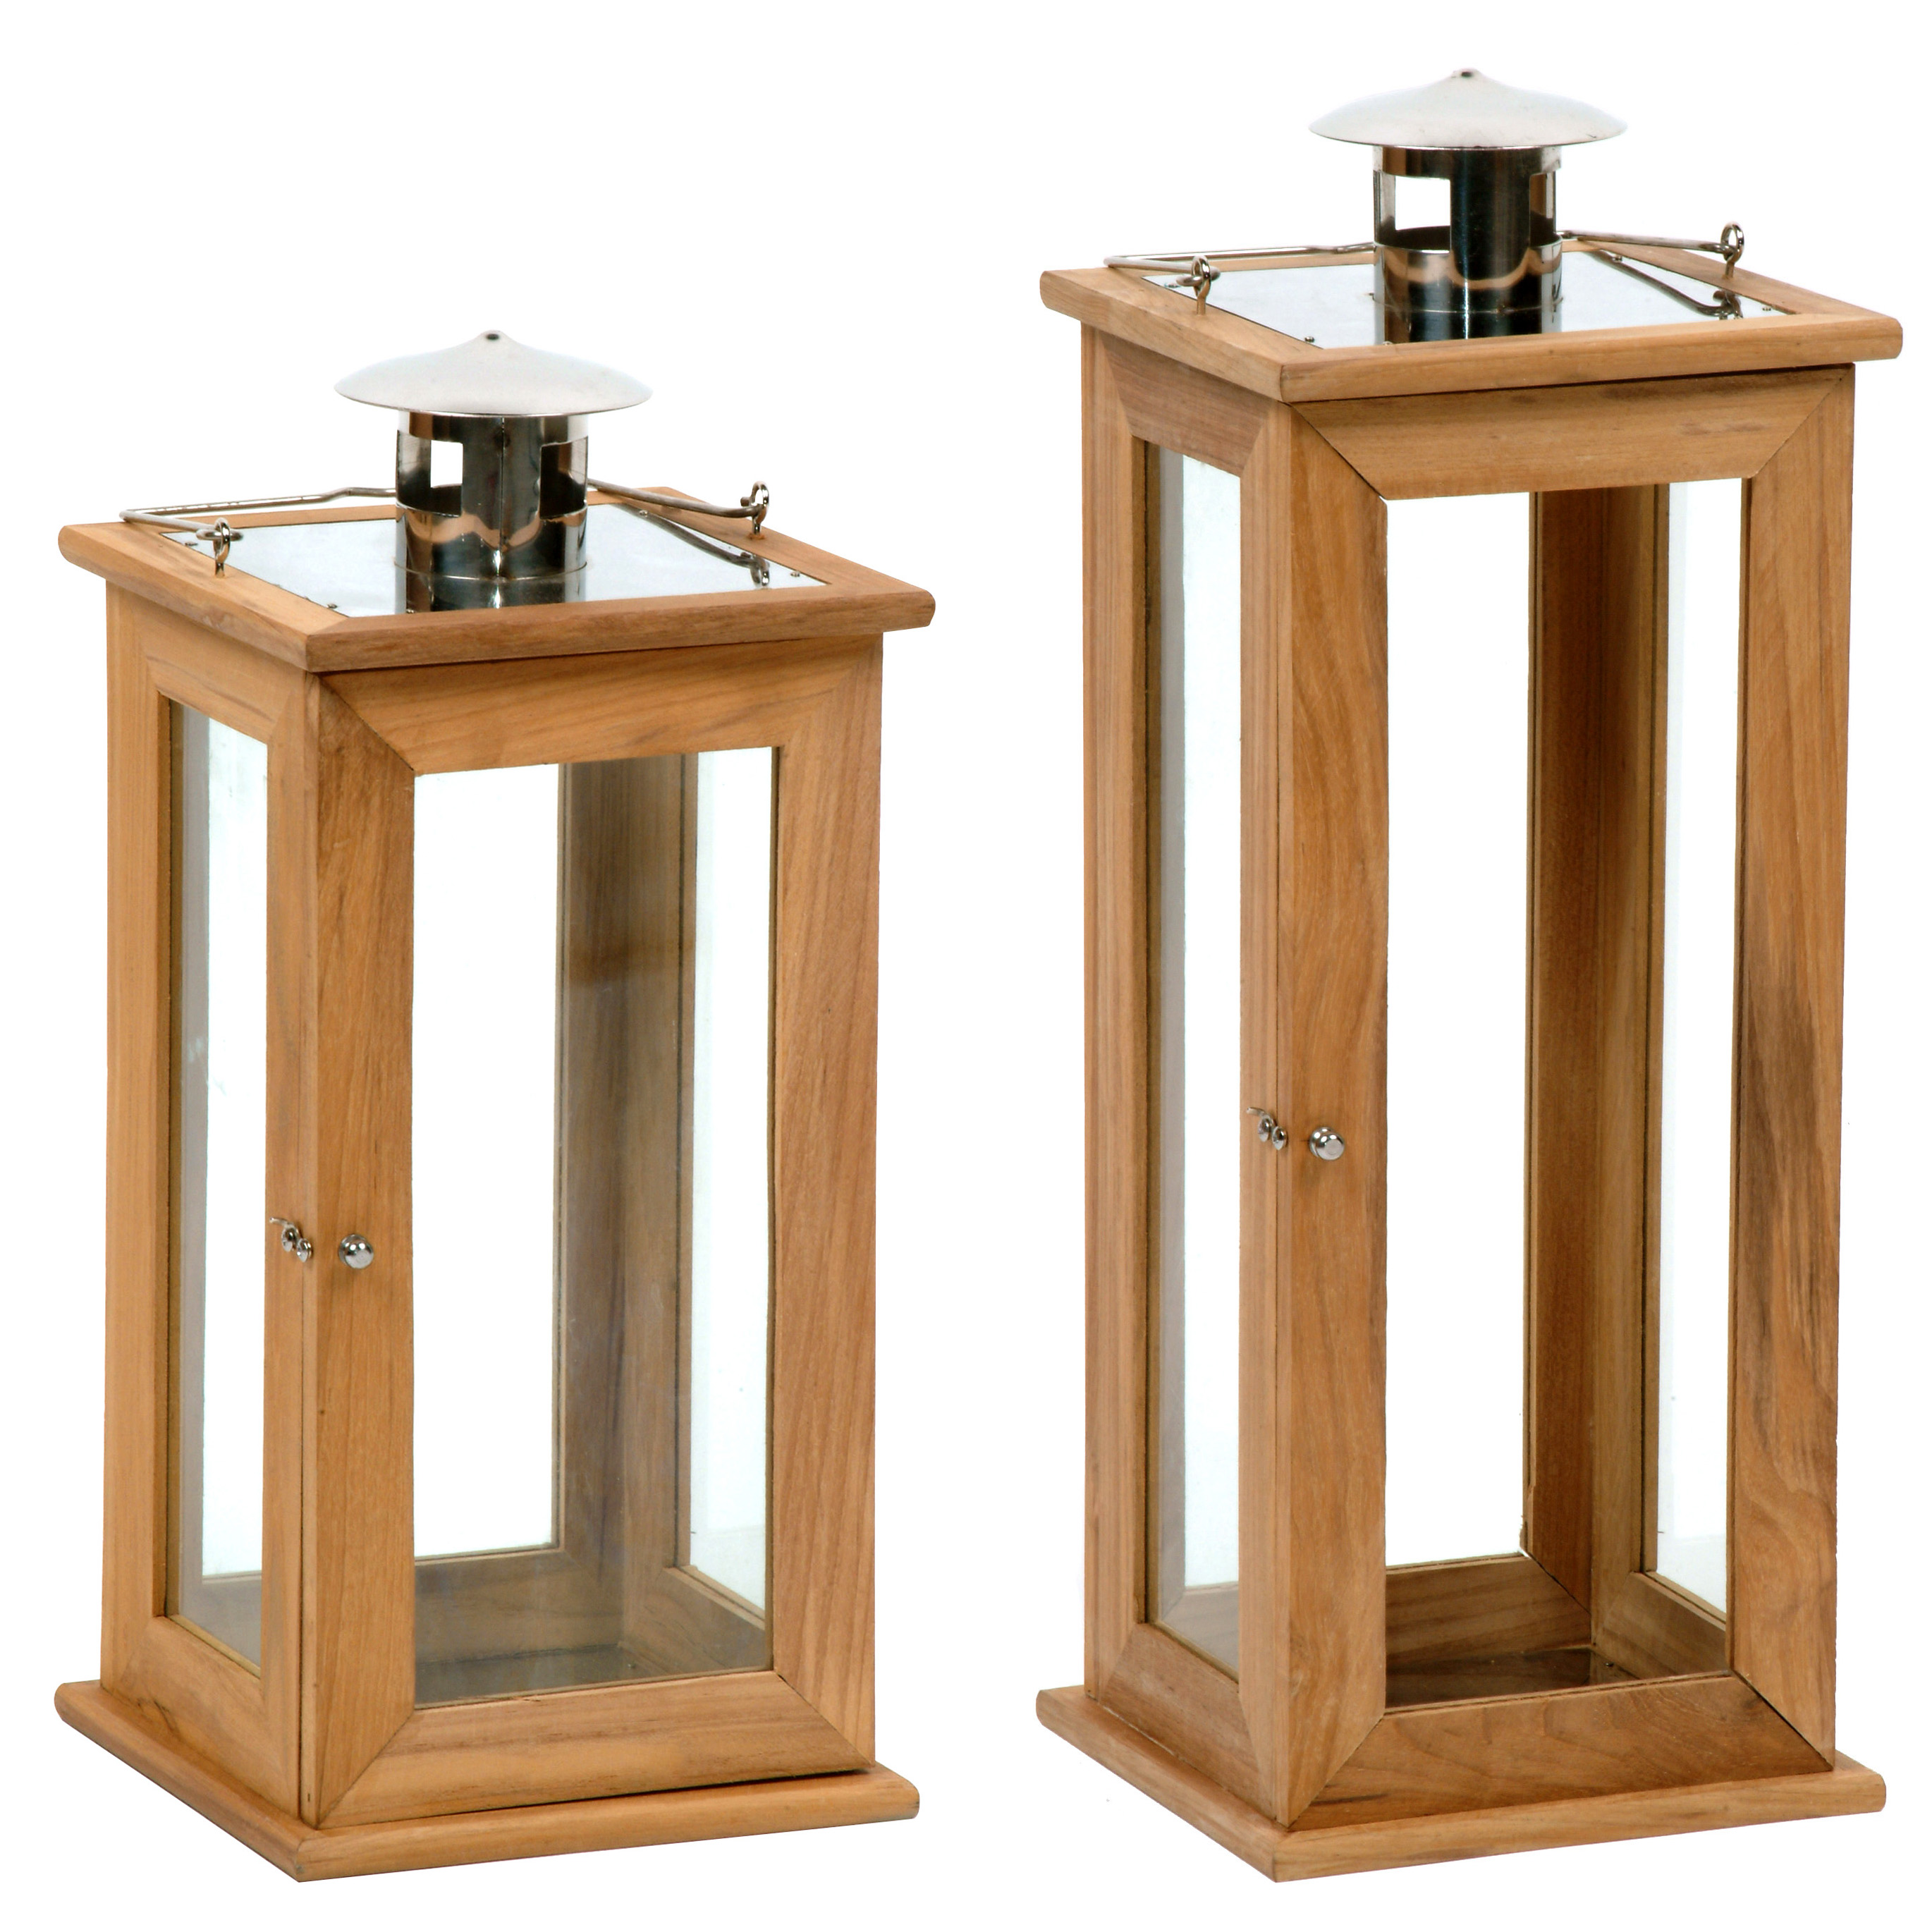 laterne holz glas f r blockkerze griff t r metall windlicht gartenlaterne gro ebay. Black Bedroom Furniture Sets. Home Design Ideas